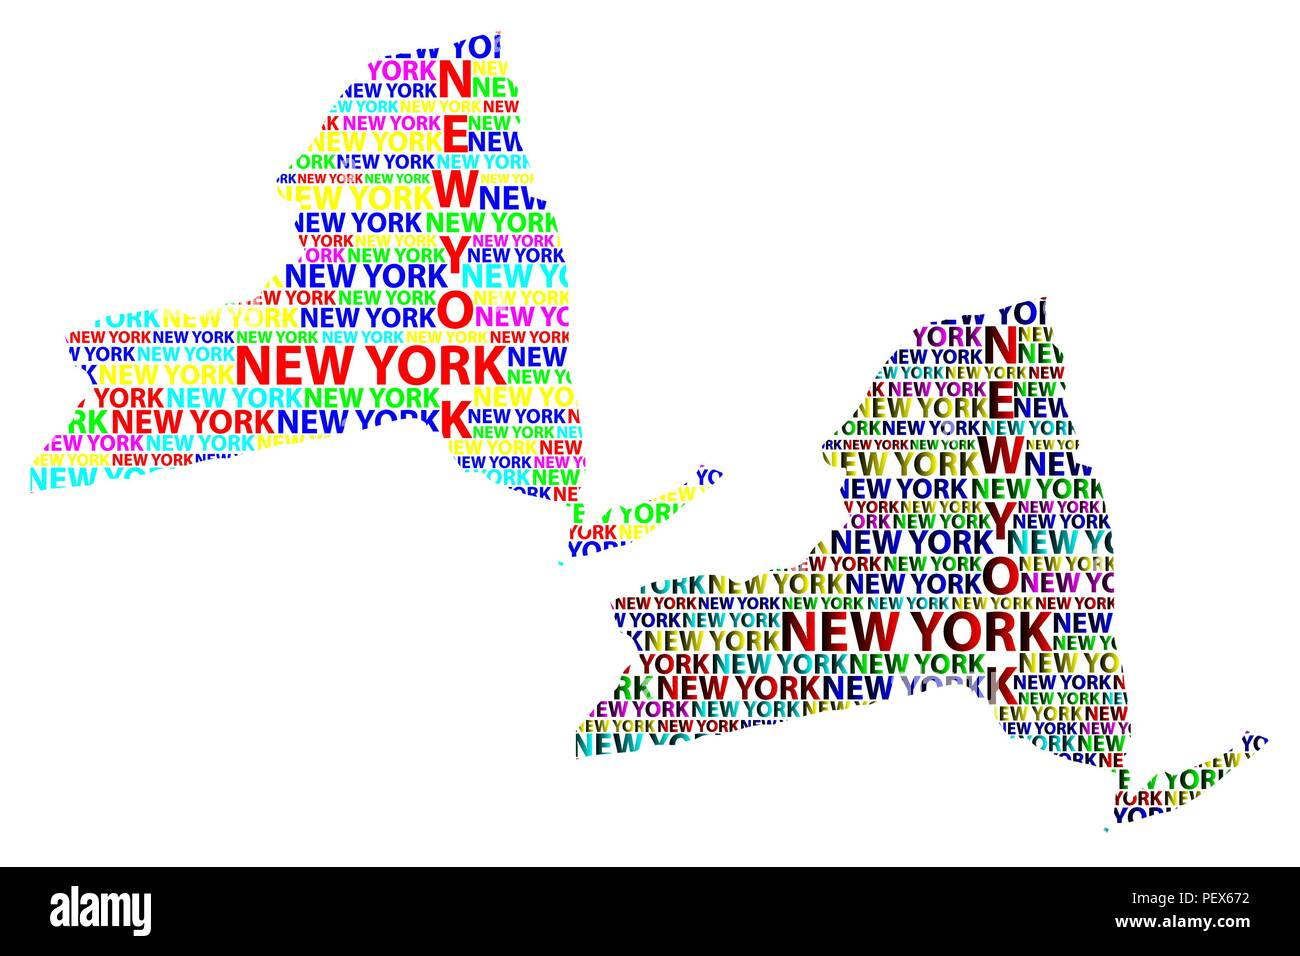 Map Of New York State And Surrounding States.Sketch New York United States Of America Letter Text Map New York